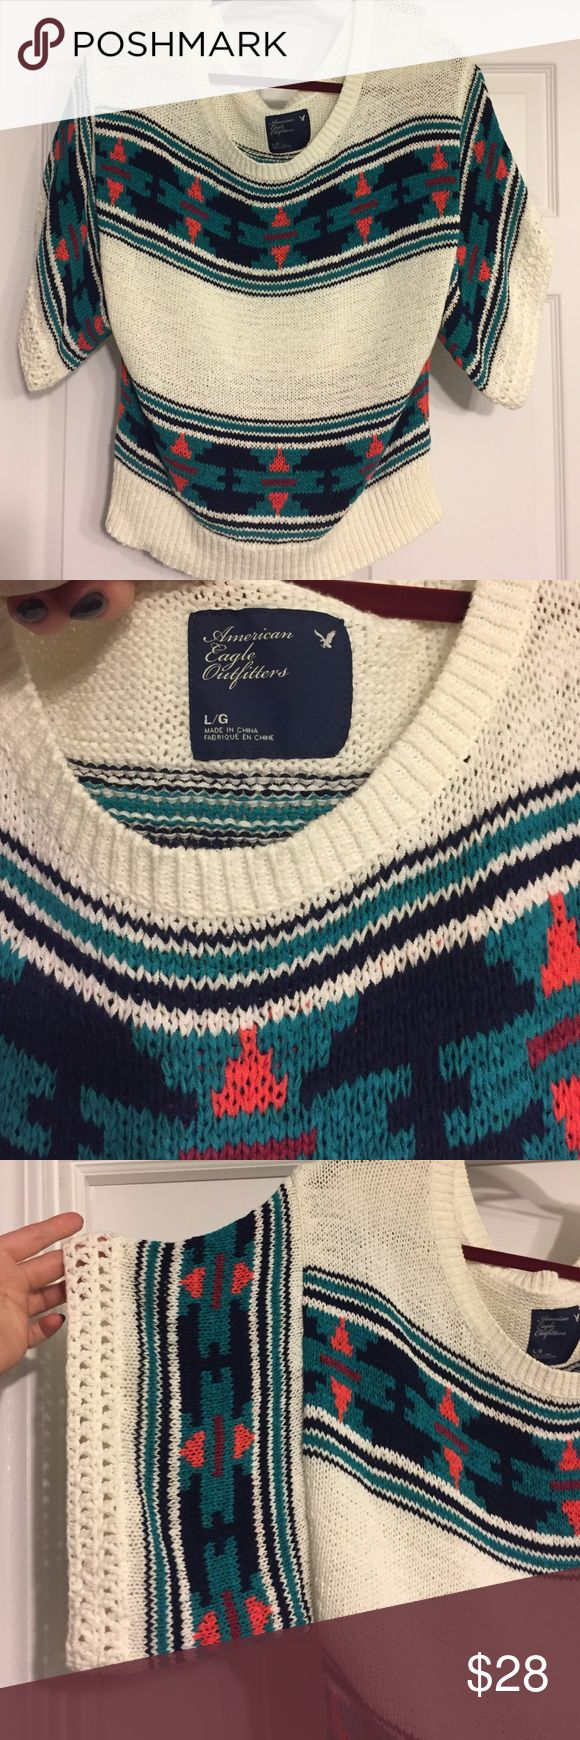 American Eagle Outfitters Sweater Awesome Aztec print AE Outfitters sweater. Crochet trim on the sleeves. Size Large. In NWOT condition. Super, super cute! American Eagle Outfitters Sweaters